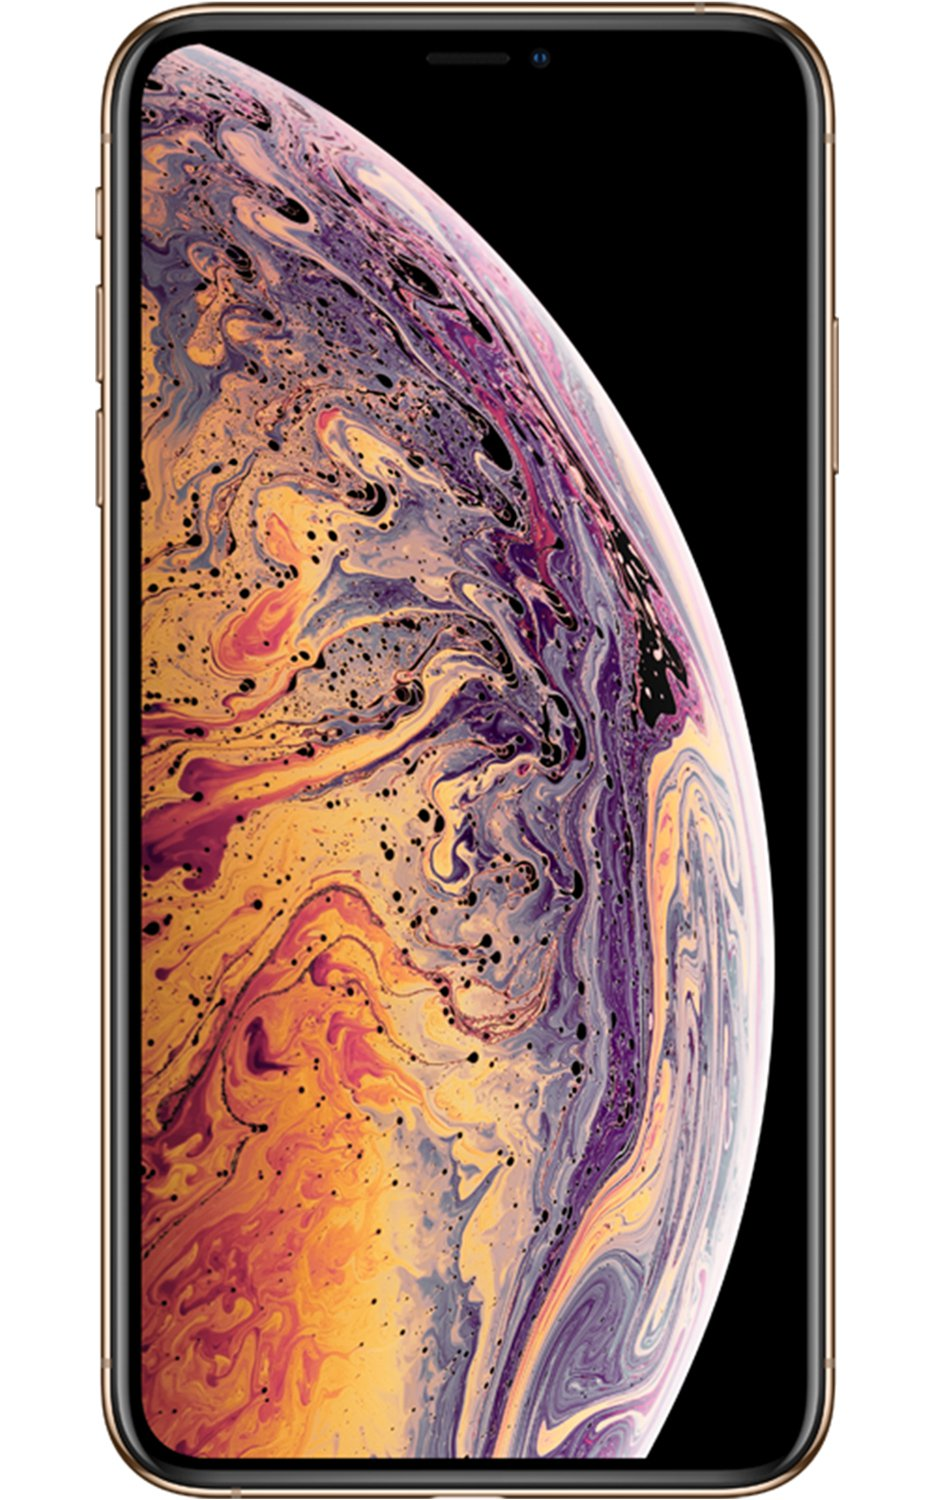 Apple Iphone XS Max Hexa Core Smartphone